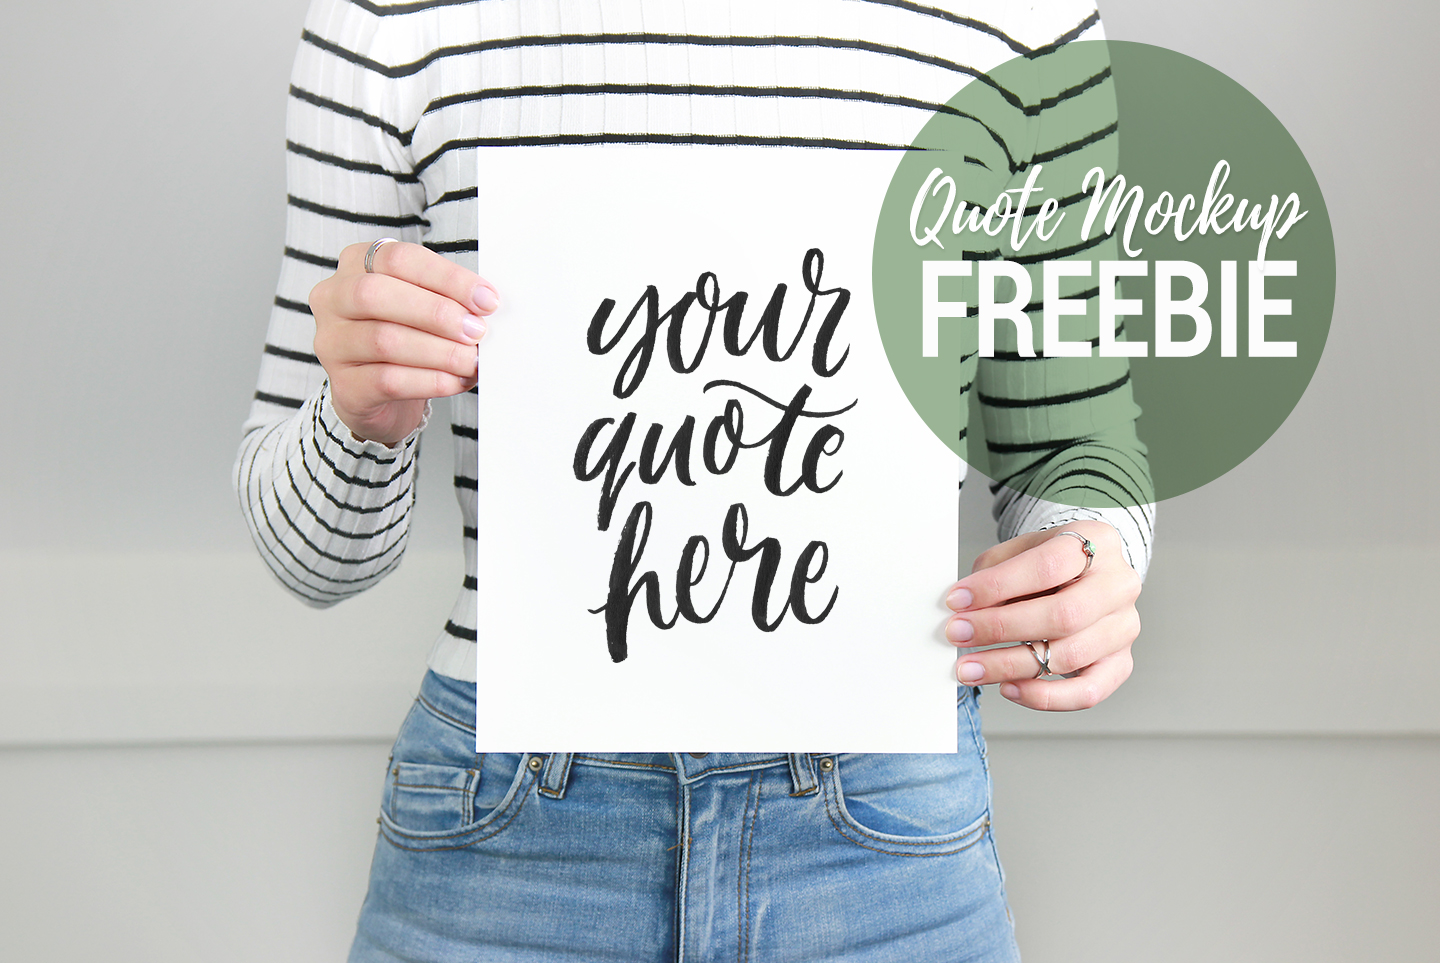 Quote product mockup freebie